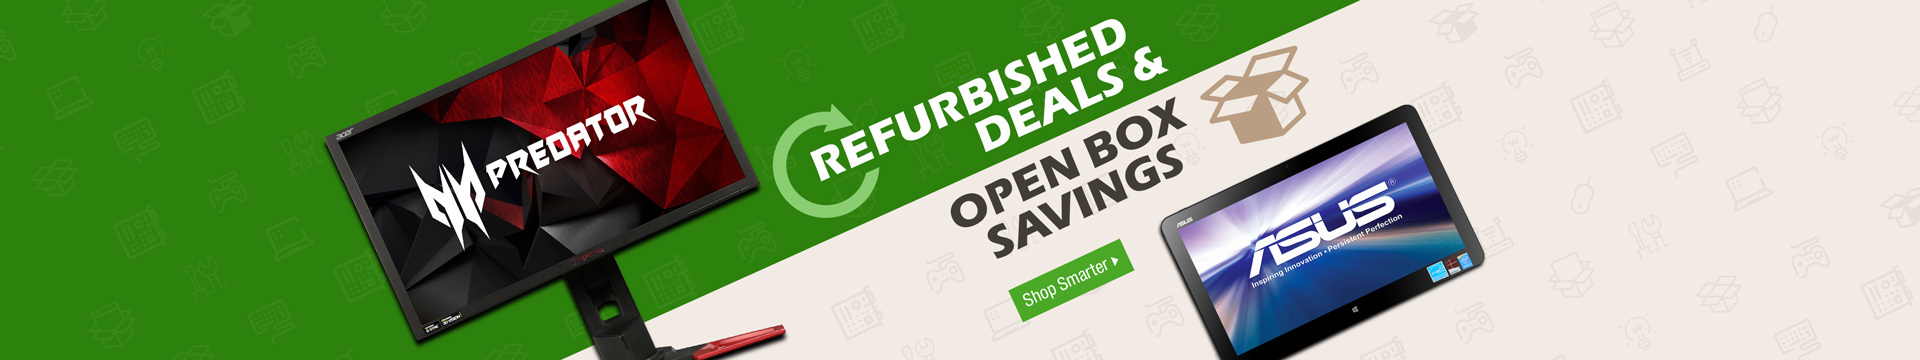 Refurbished Deals & Open Box Savings